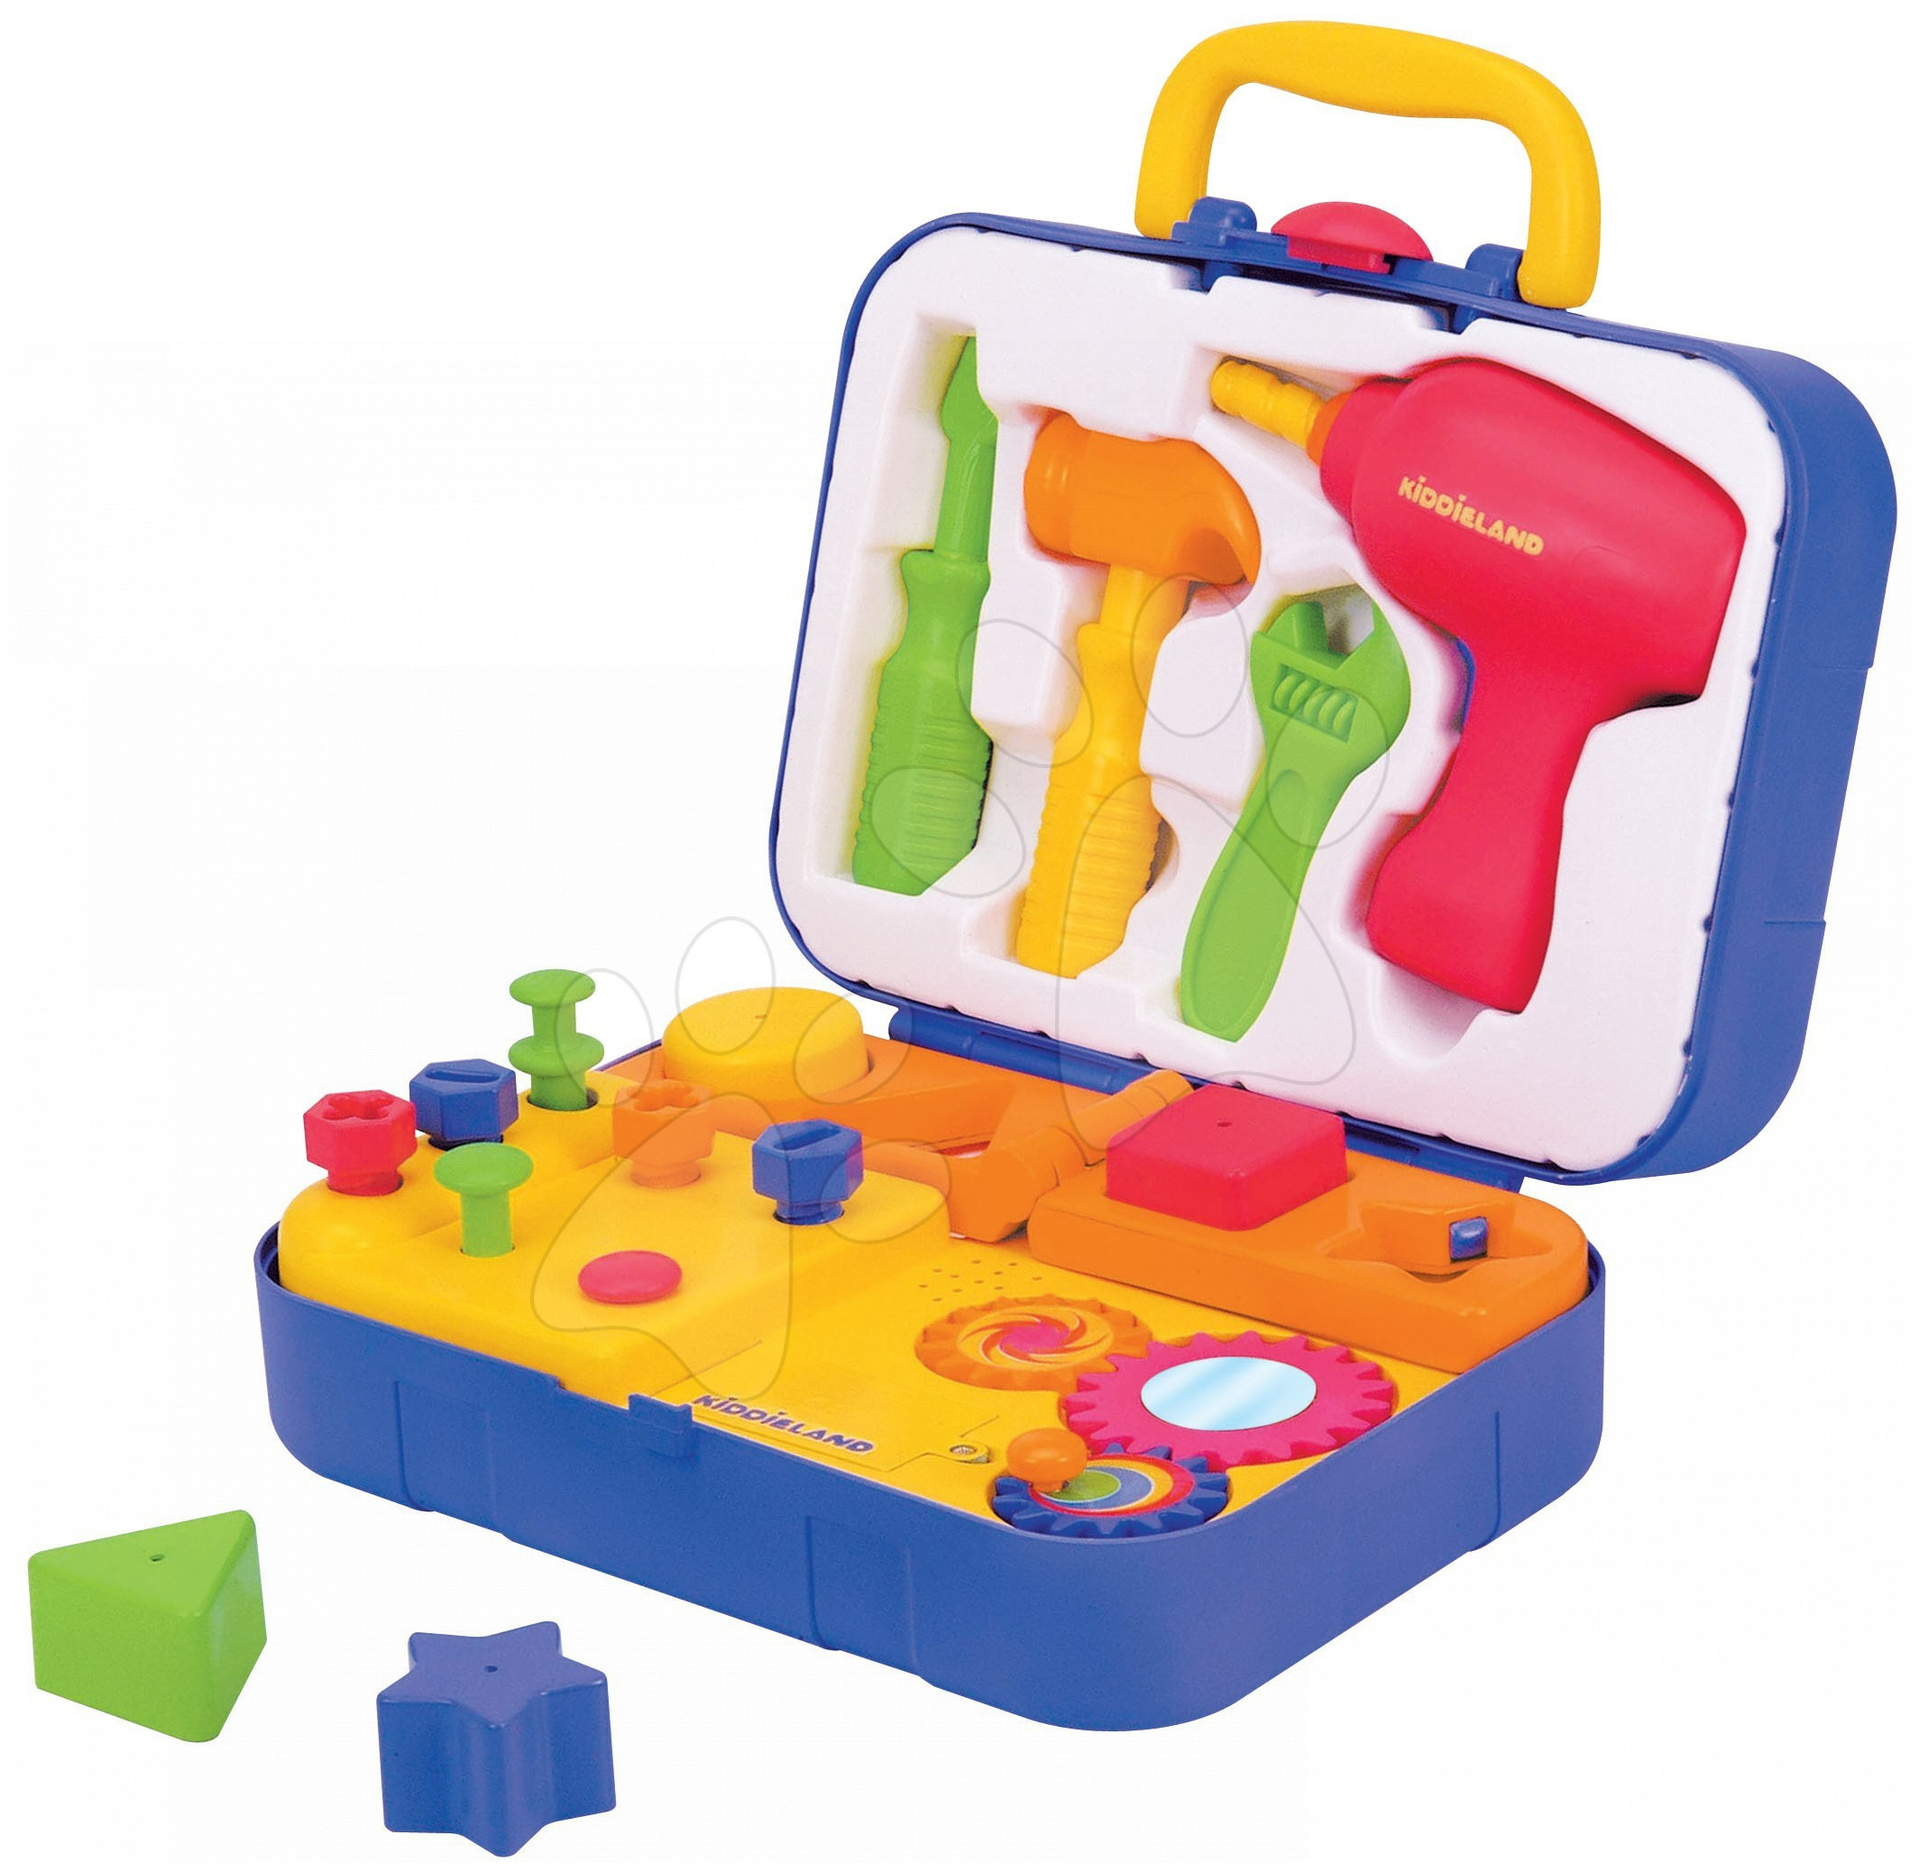 Kiddieland 27722 Activity tool box